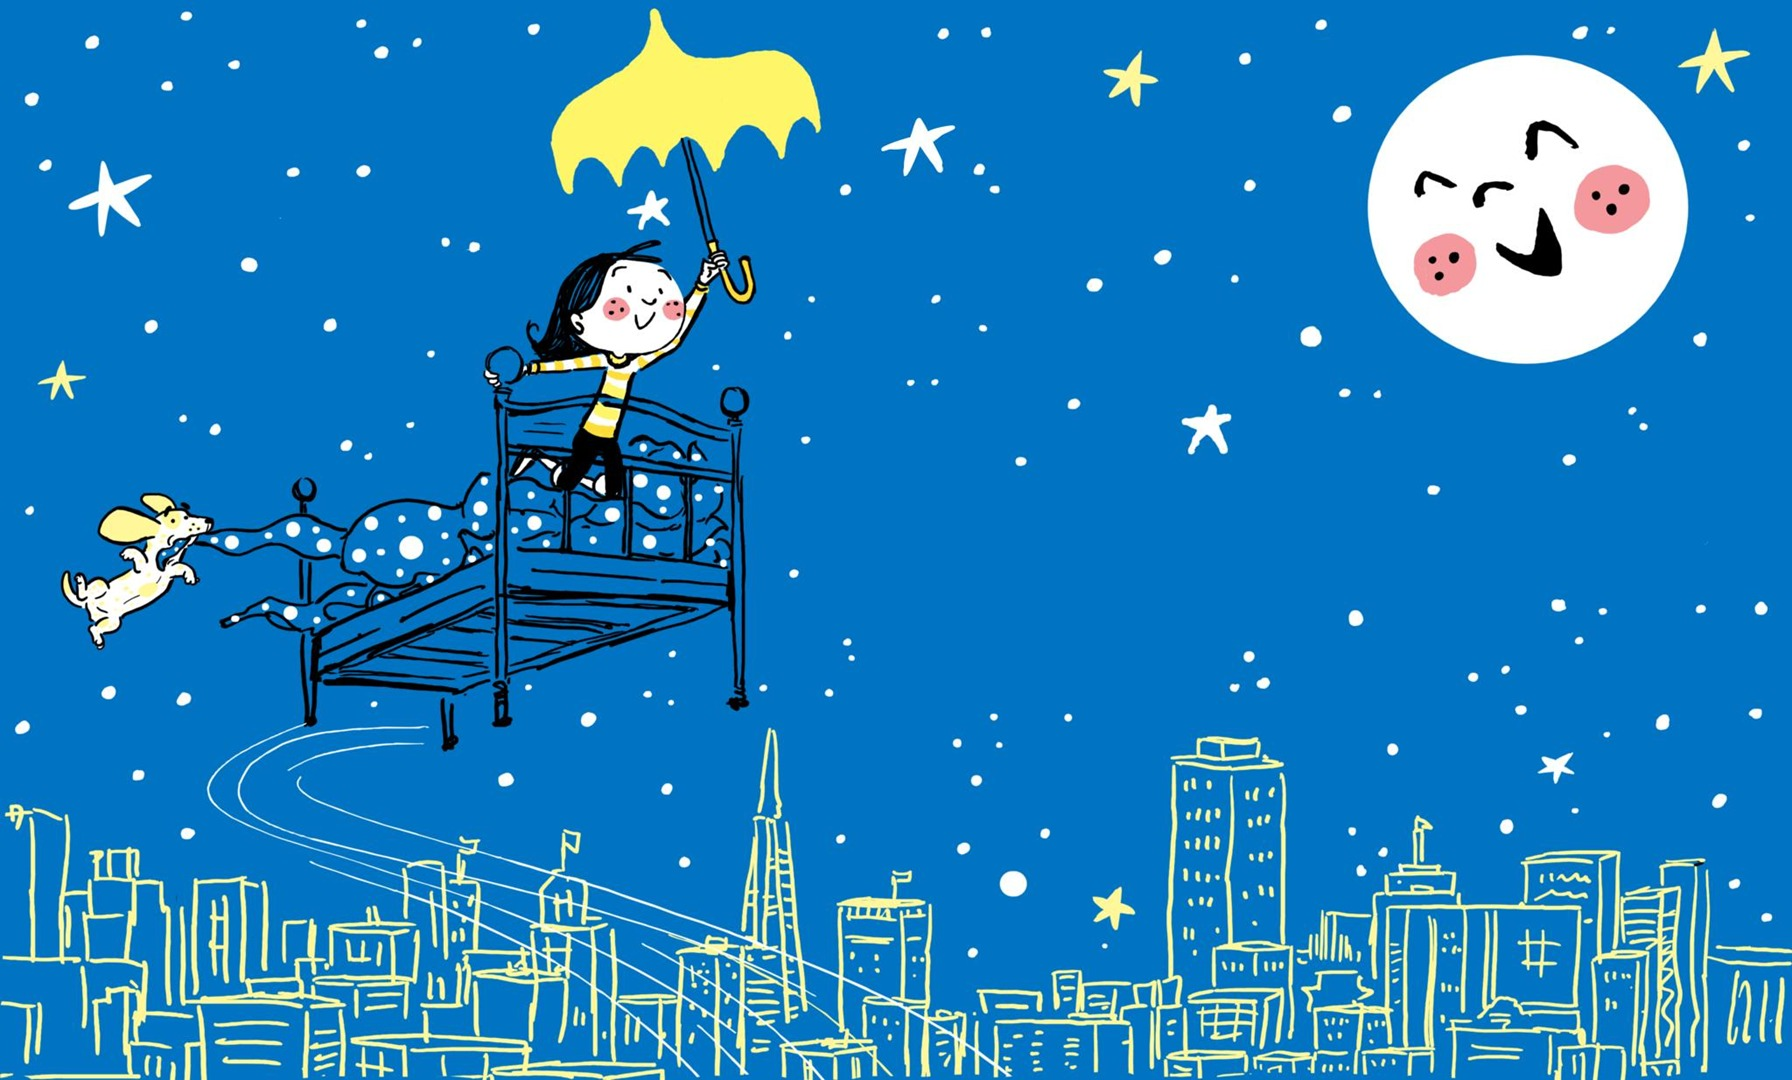 I dream of all of life's possibilities, My Yellow Umbrella by Chris Robertson, Review, photo